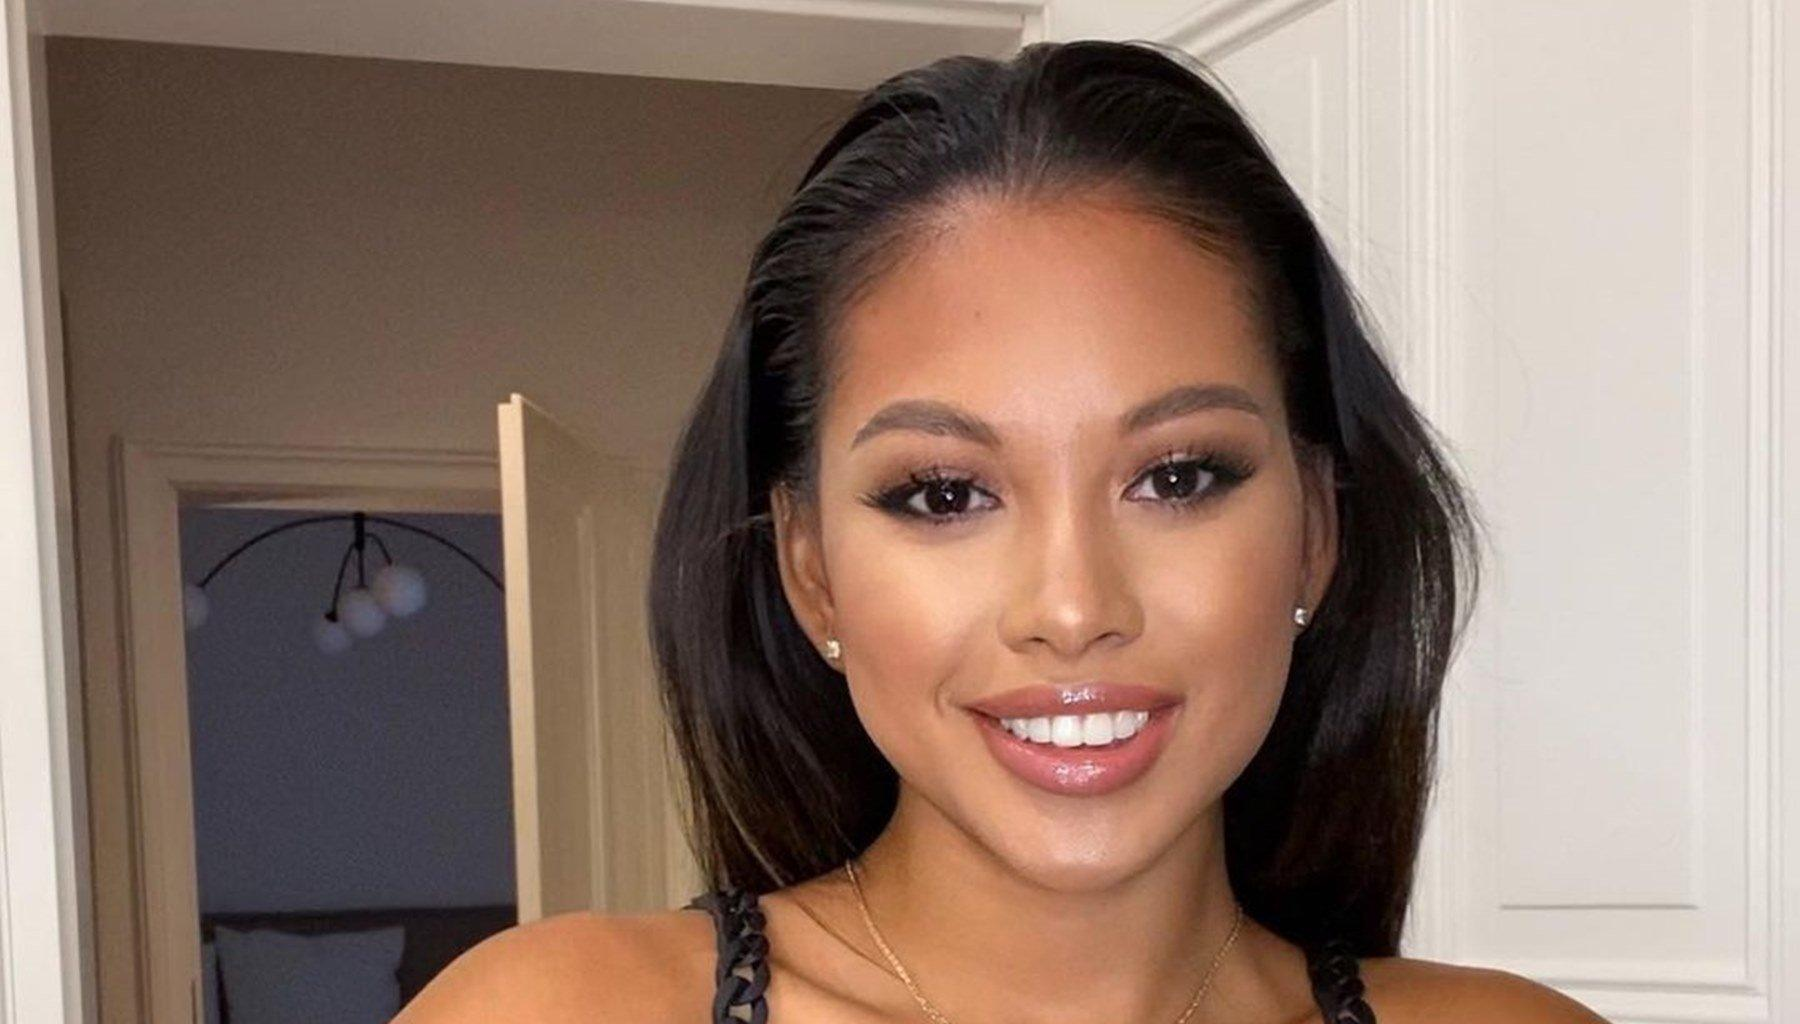 Chris Brown's Baby Mama, Ammika Harris Is Waiting For Gyms To Reopen